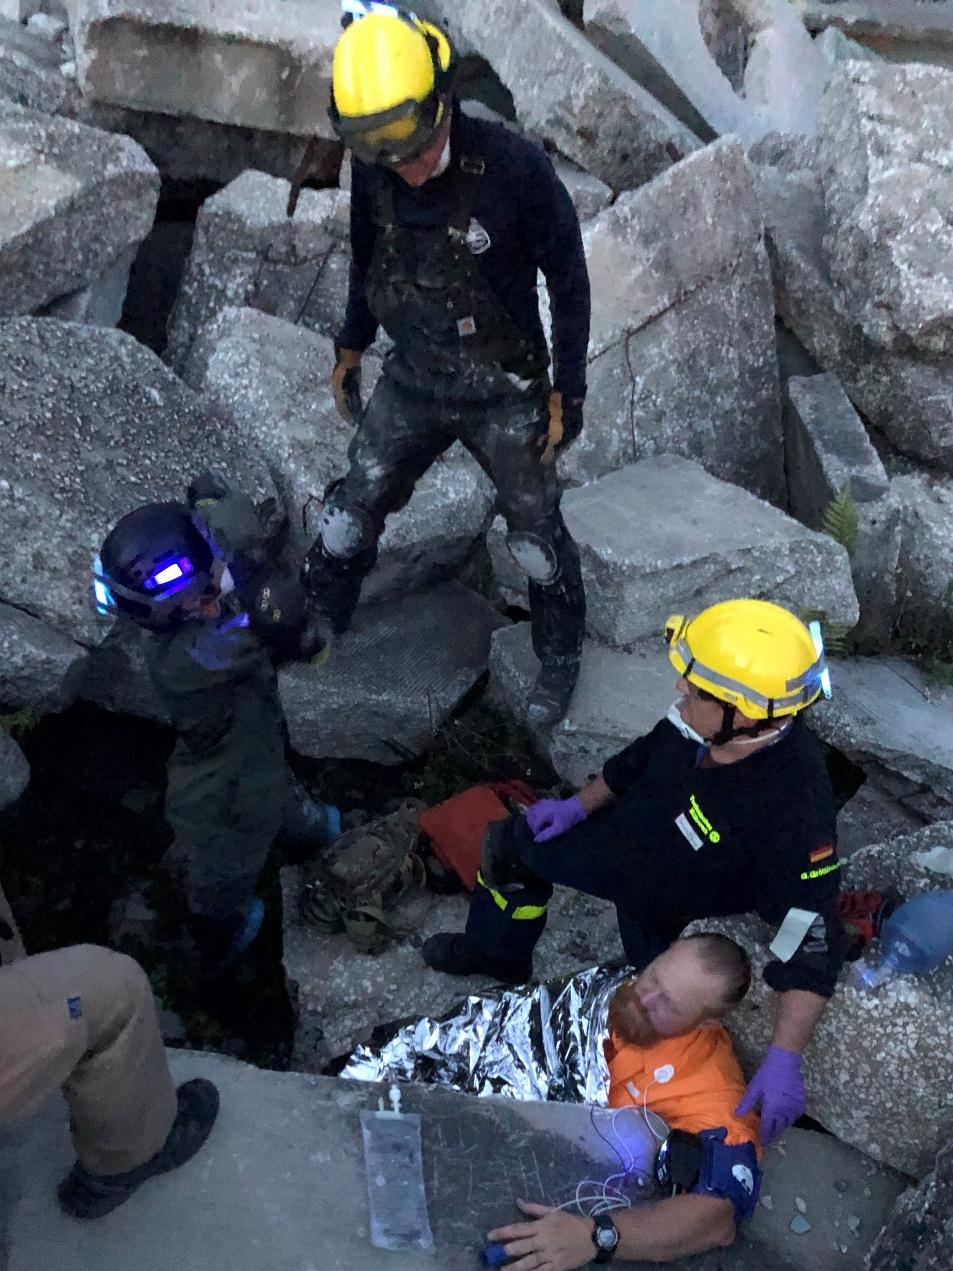 Clear communication between rescue workers, who are often members of different organizations or even from different countries, is critical to delivering safe and effective care, treatment and evacuation.